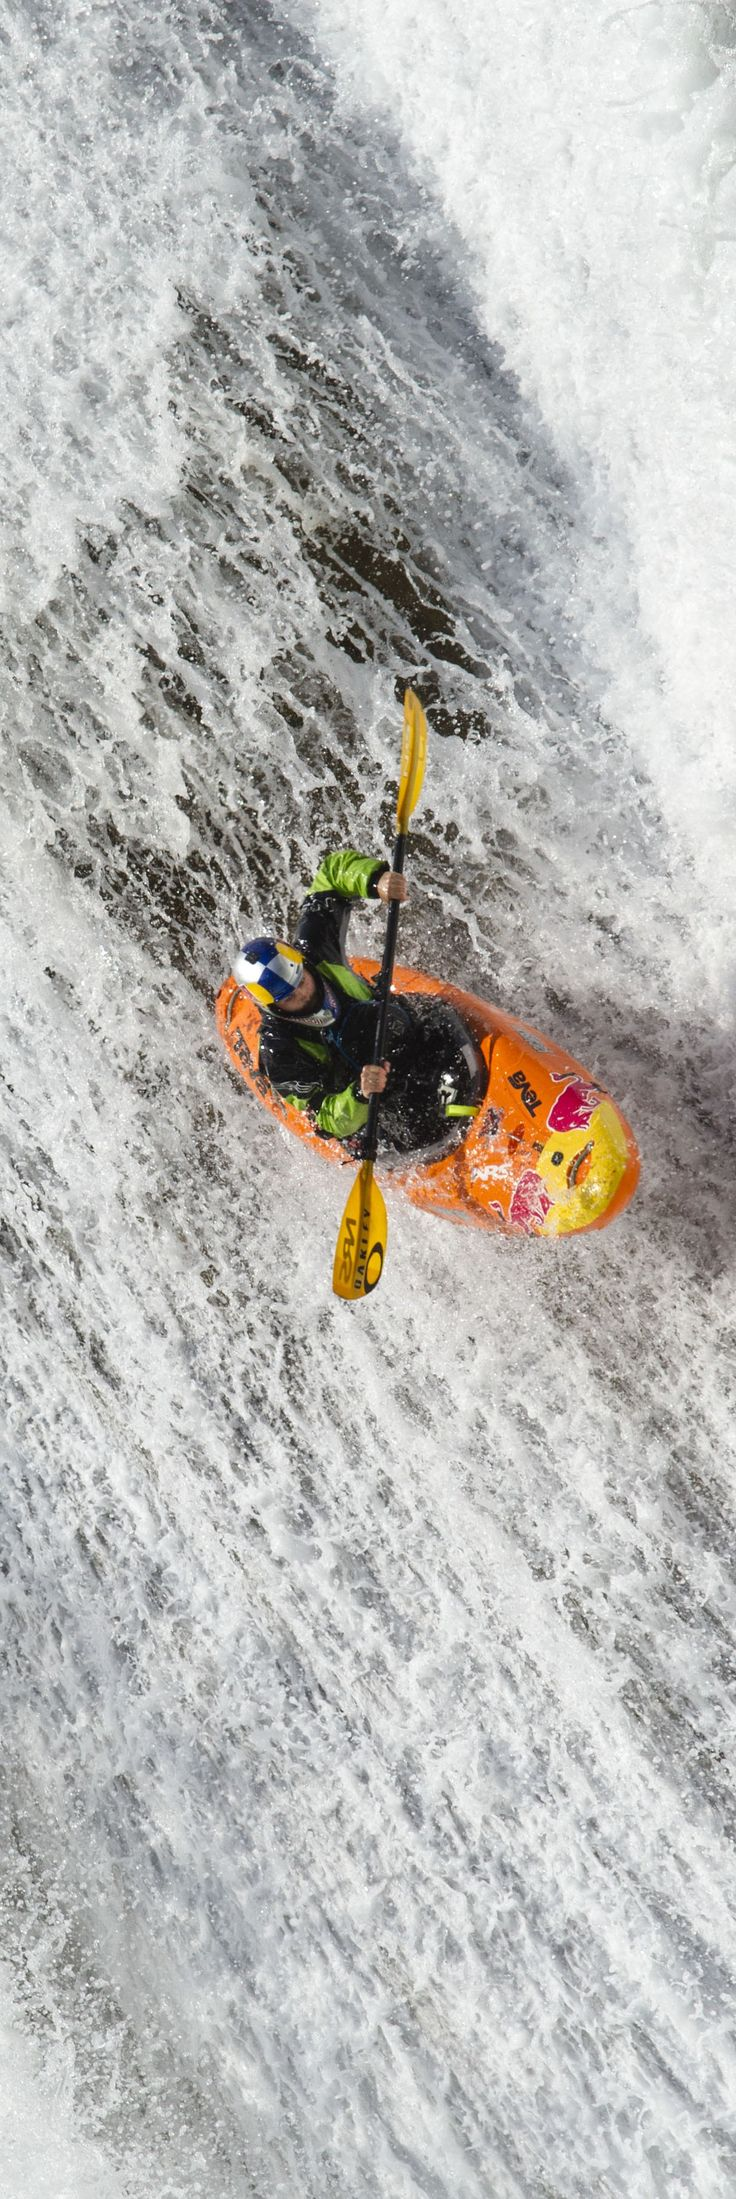 Chasing waterfalls. #redbull #kayak